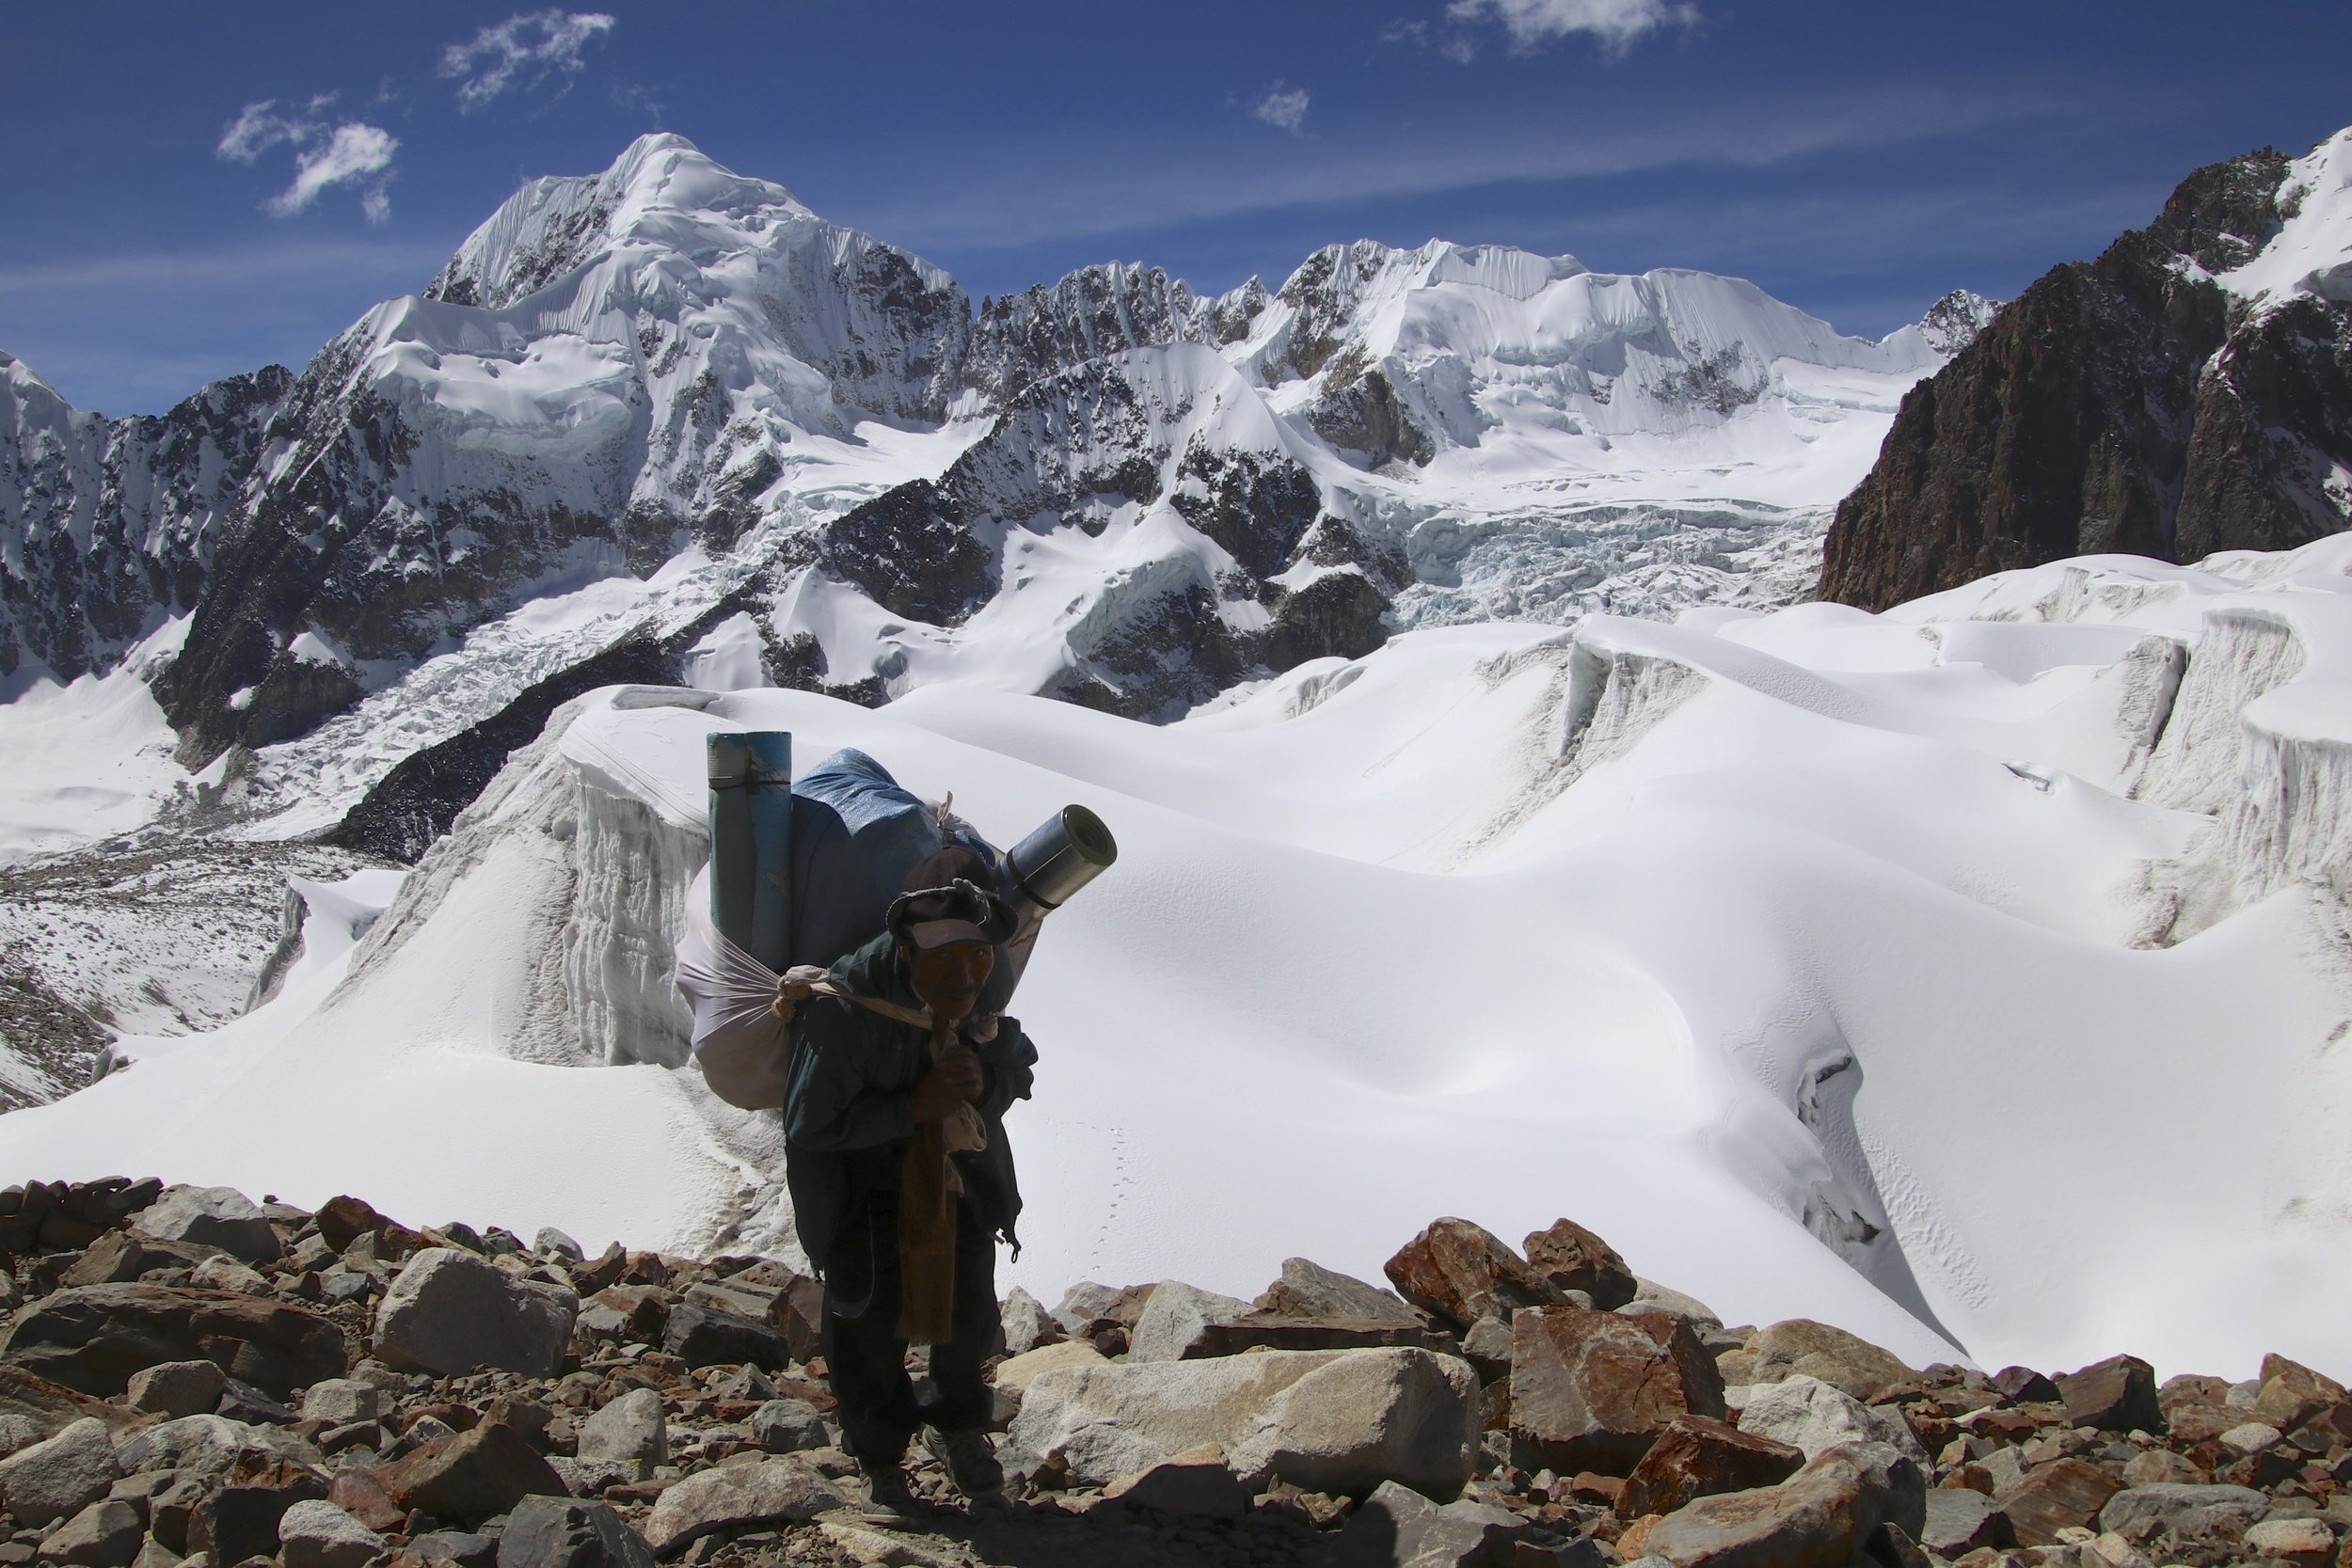 One of our porters approaching the high camp. Illampu is in the distance.